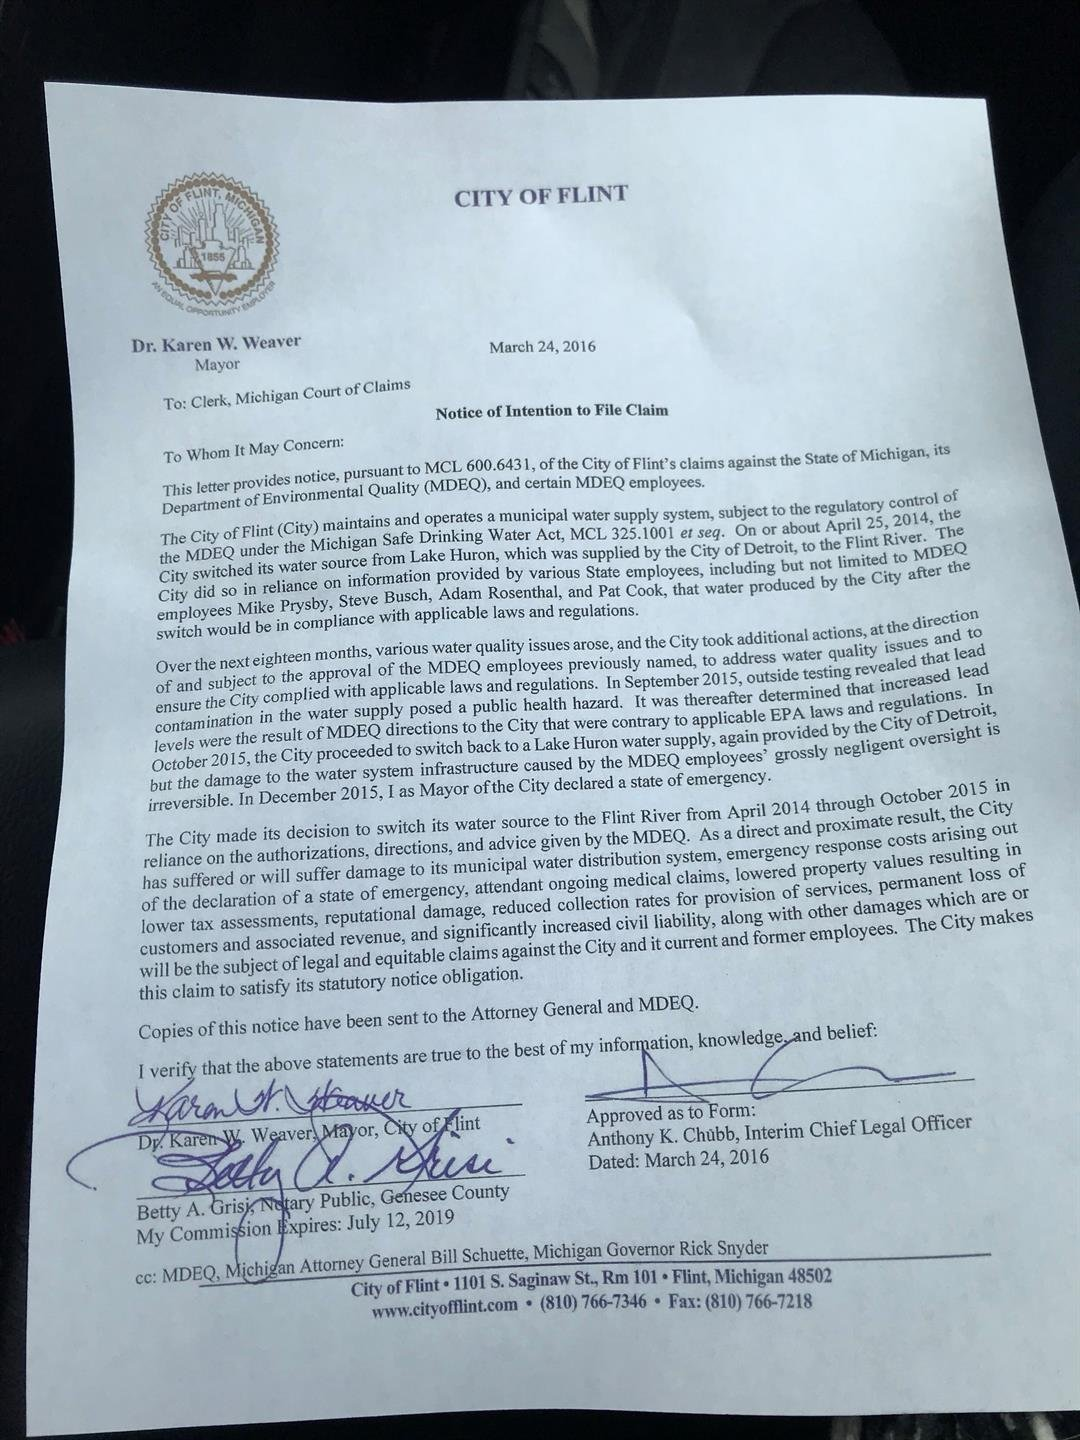 Flint's notice of intention to sue